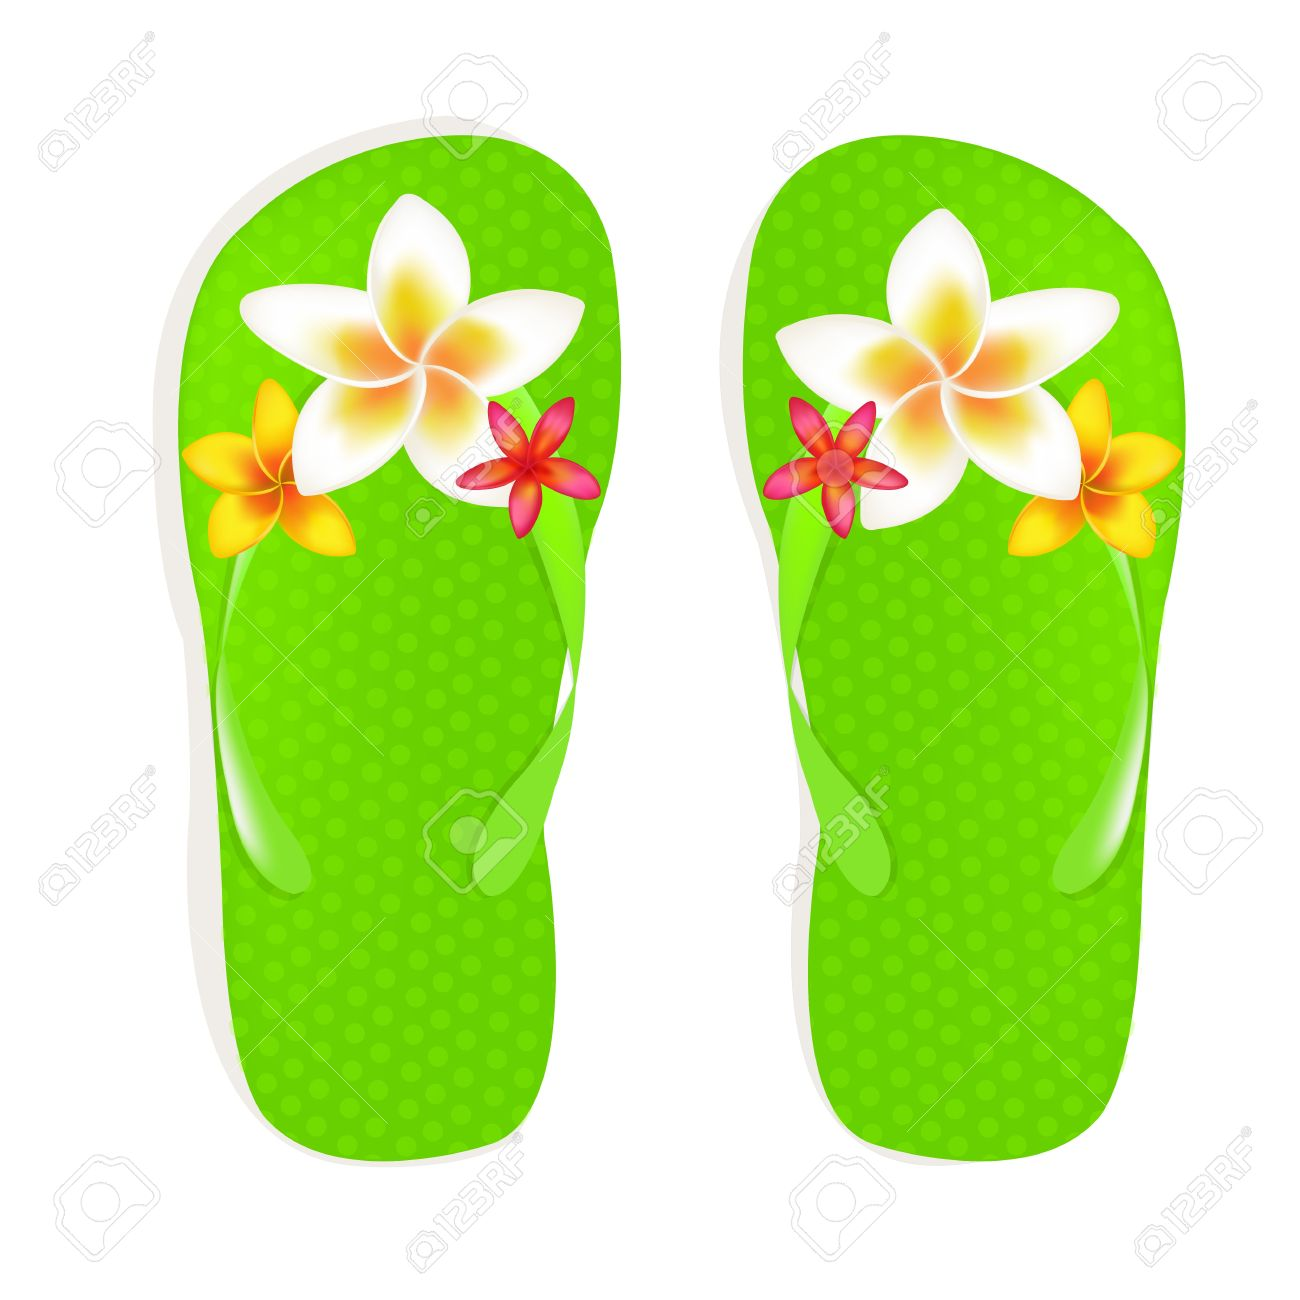 Flip Flop Sandals With Plumeria Flowers Isolated On White